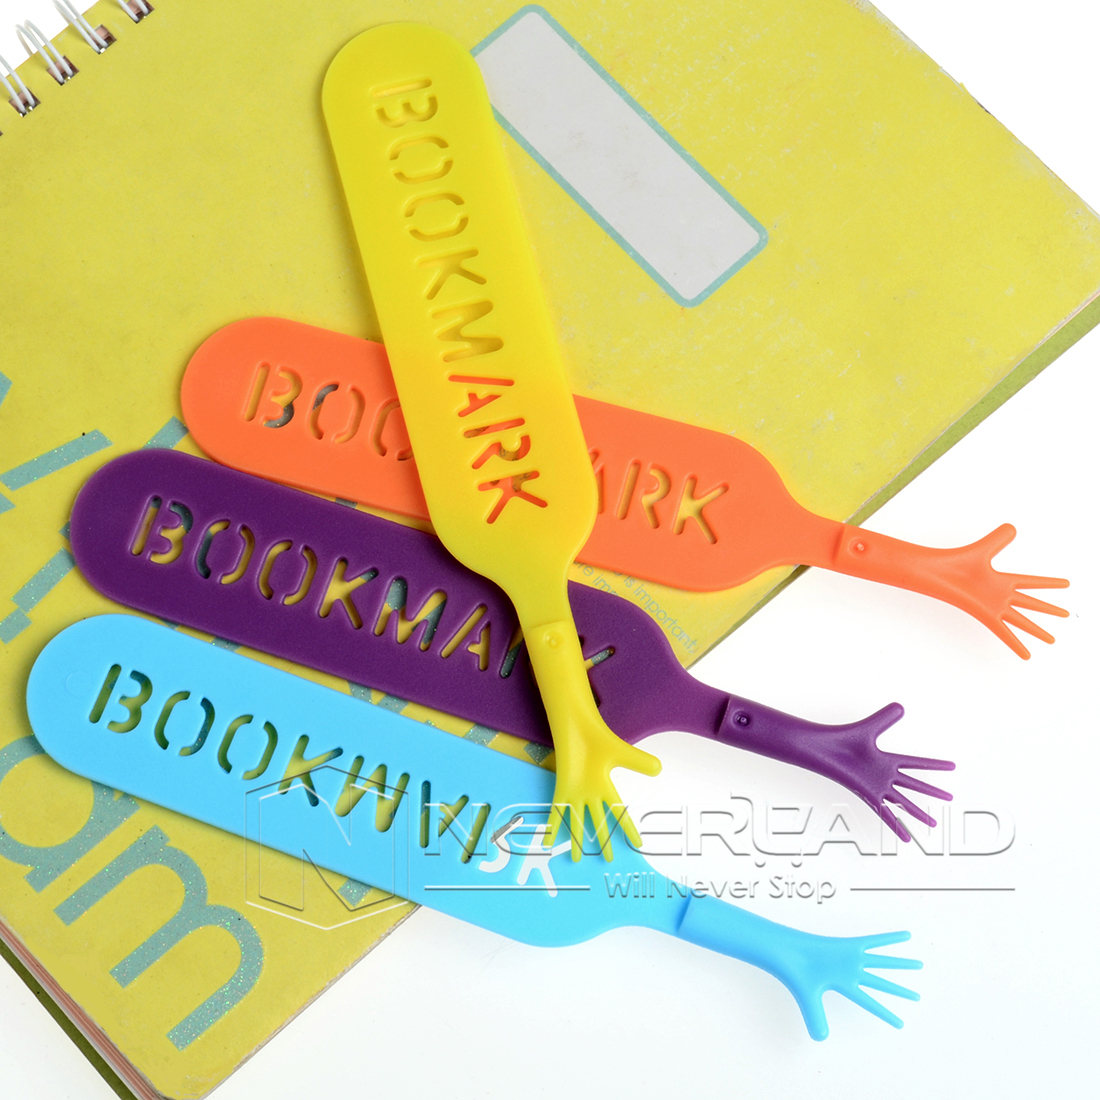 4pcs Help Me Bookmarks Pad Note Memo Stationery Novelty Funny Book Mark Bookworm